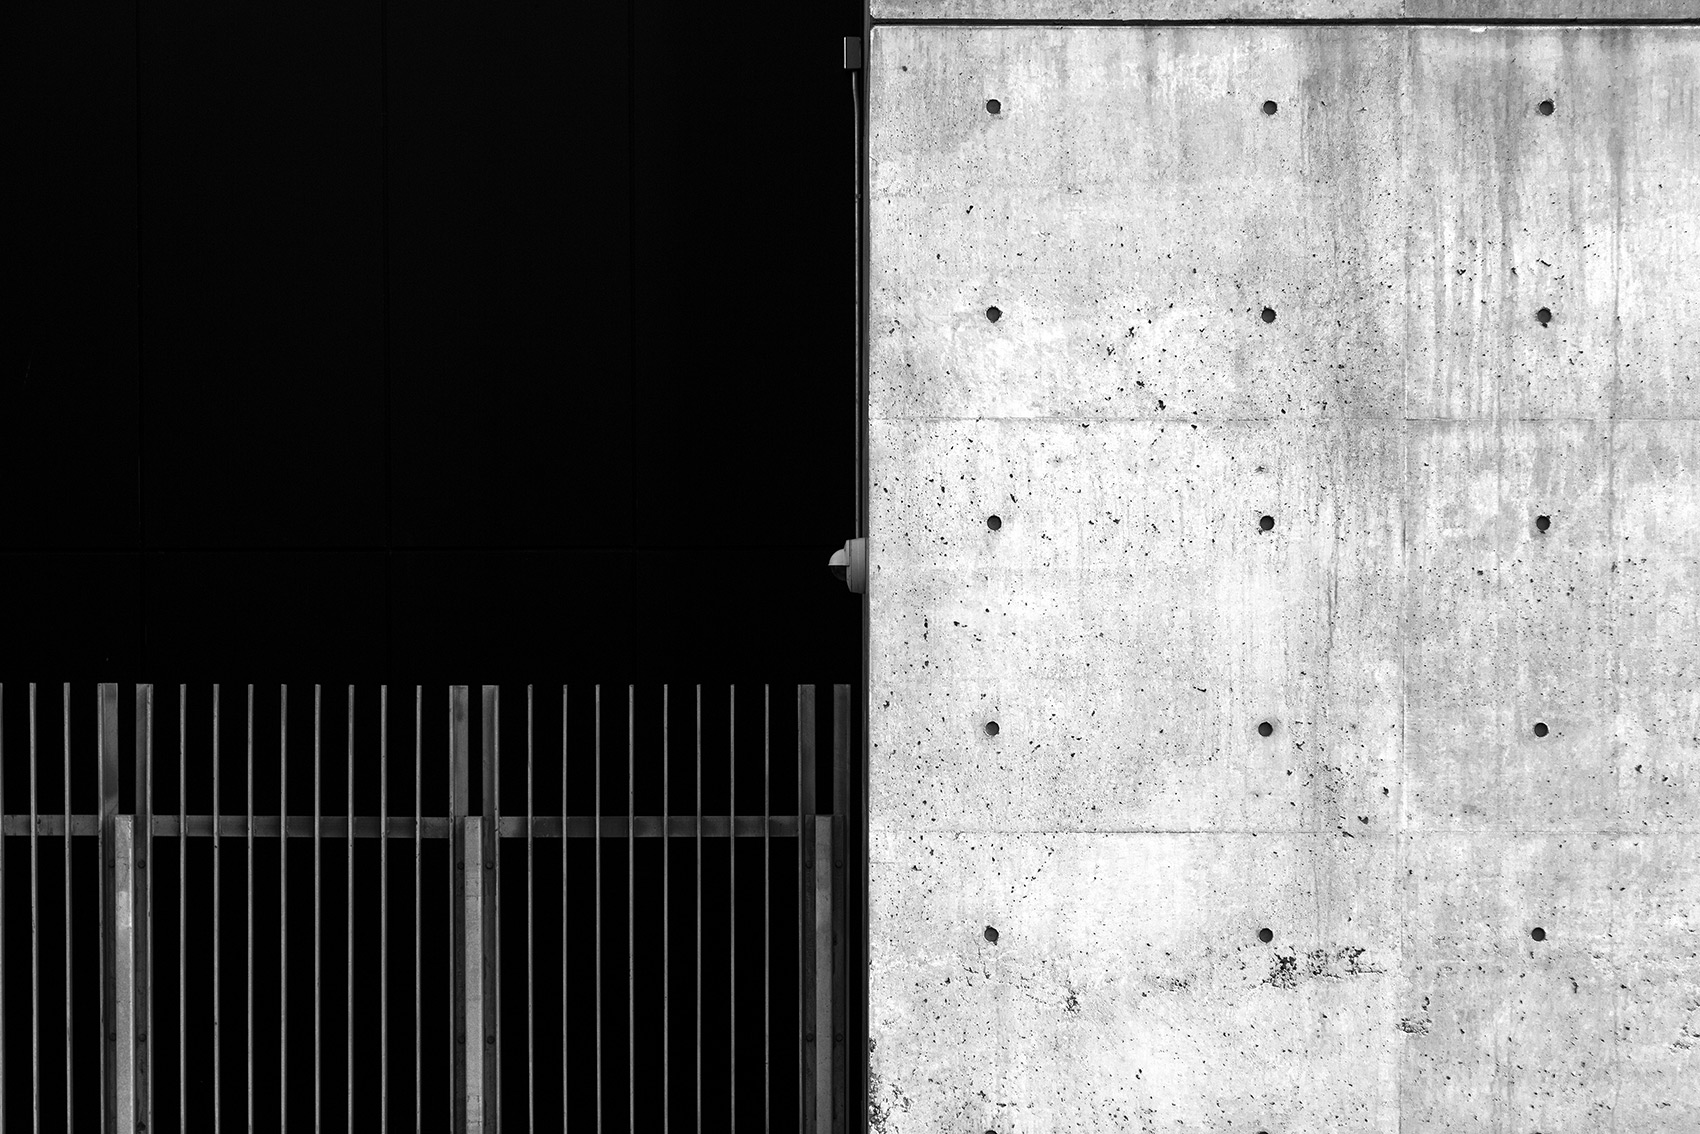 20141015. Concrete wall meets metal fence and void. Minimal Aest